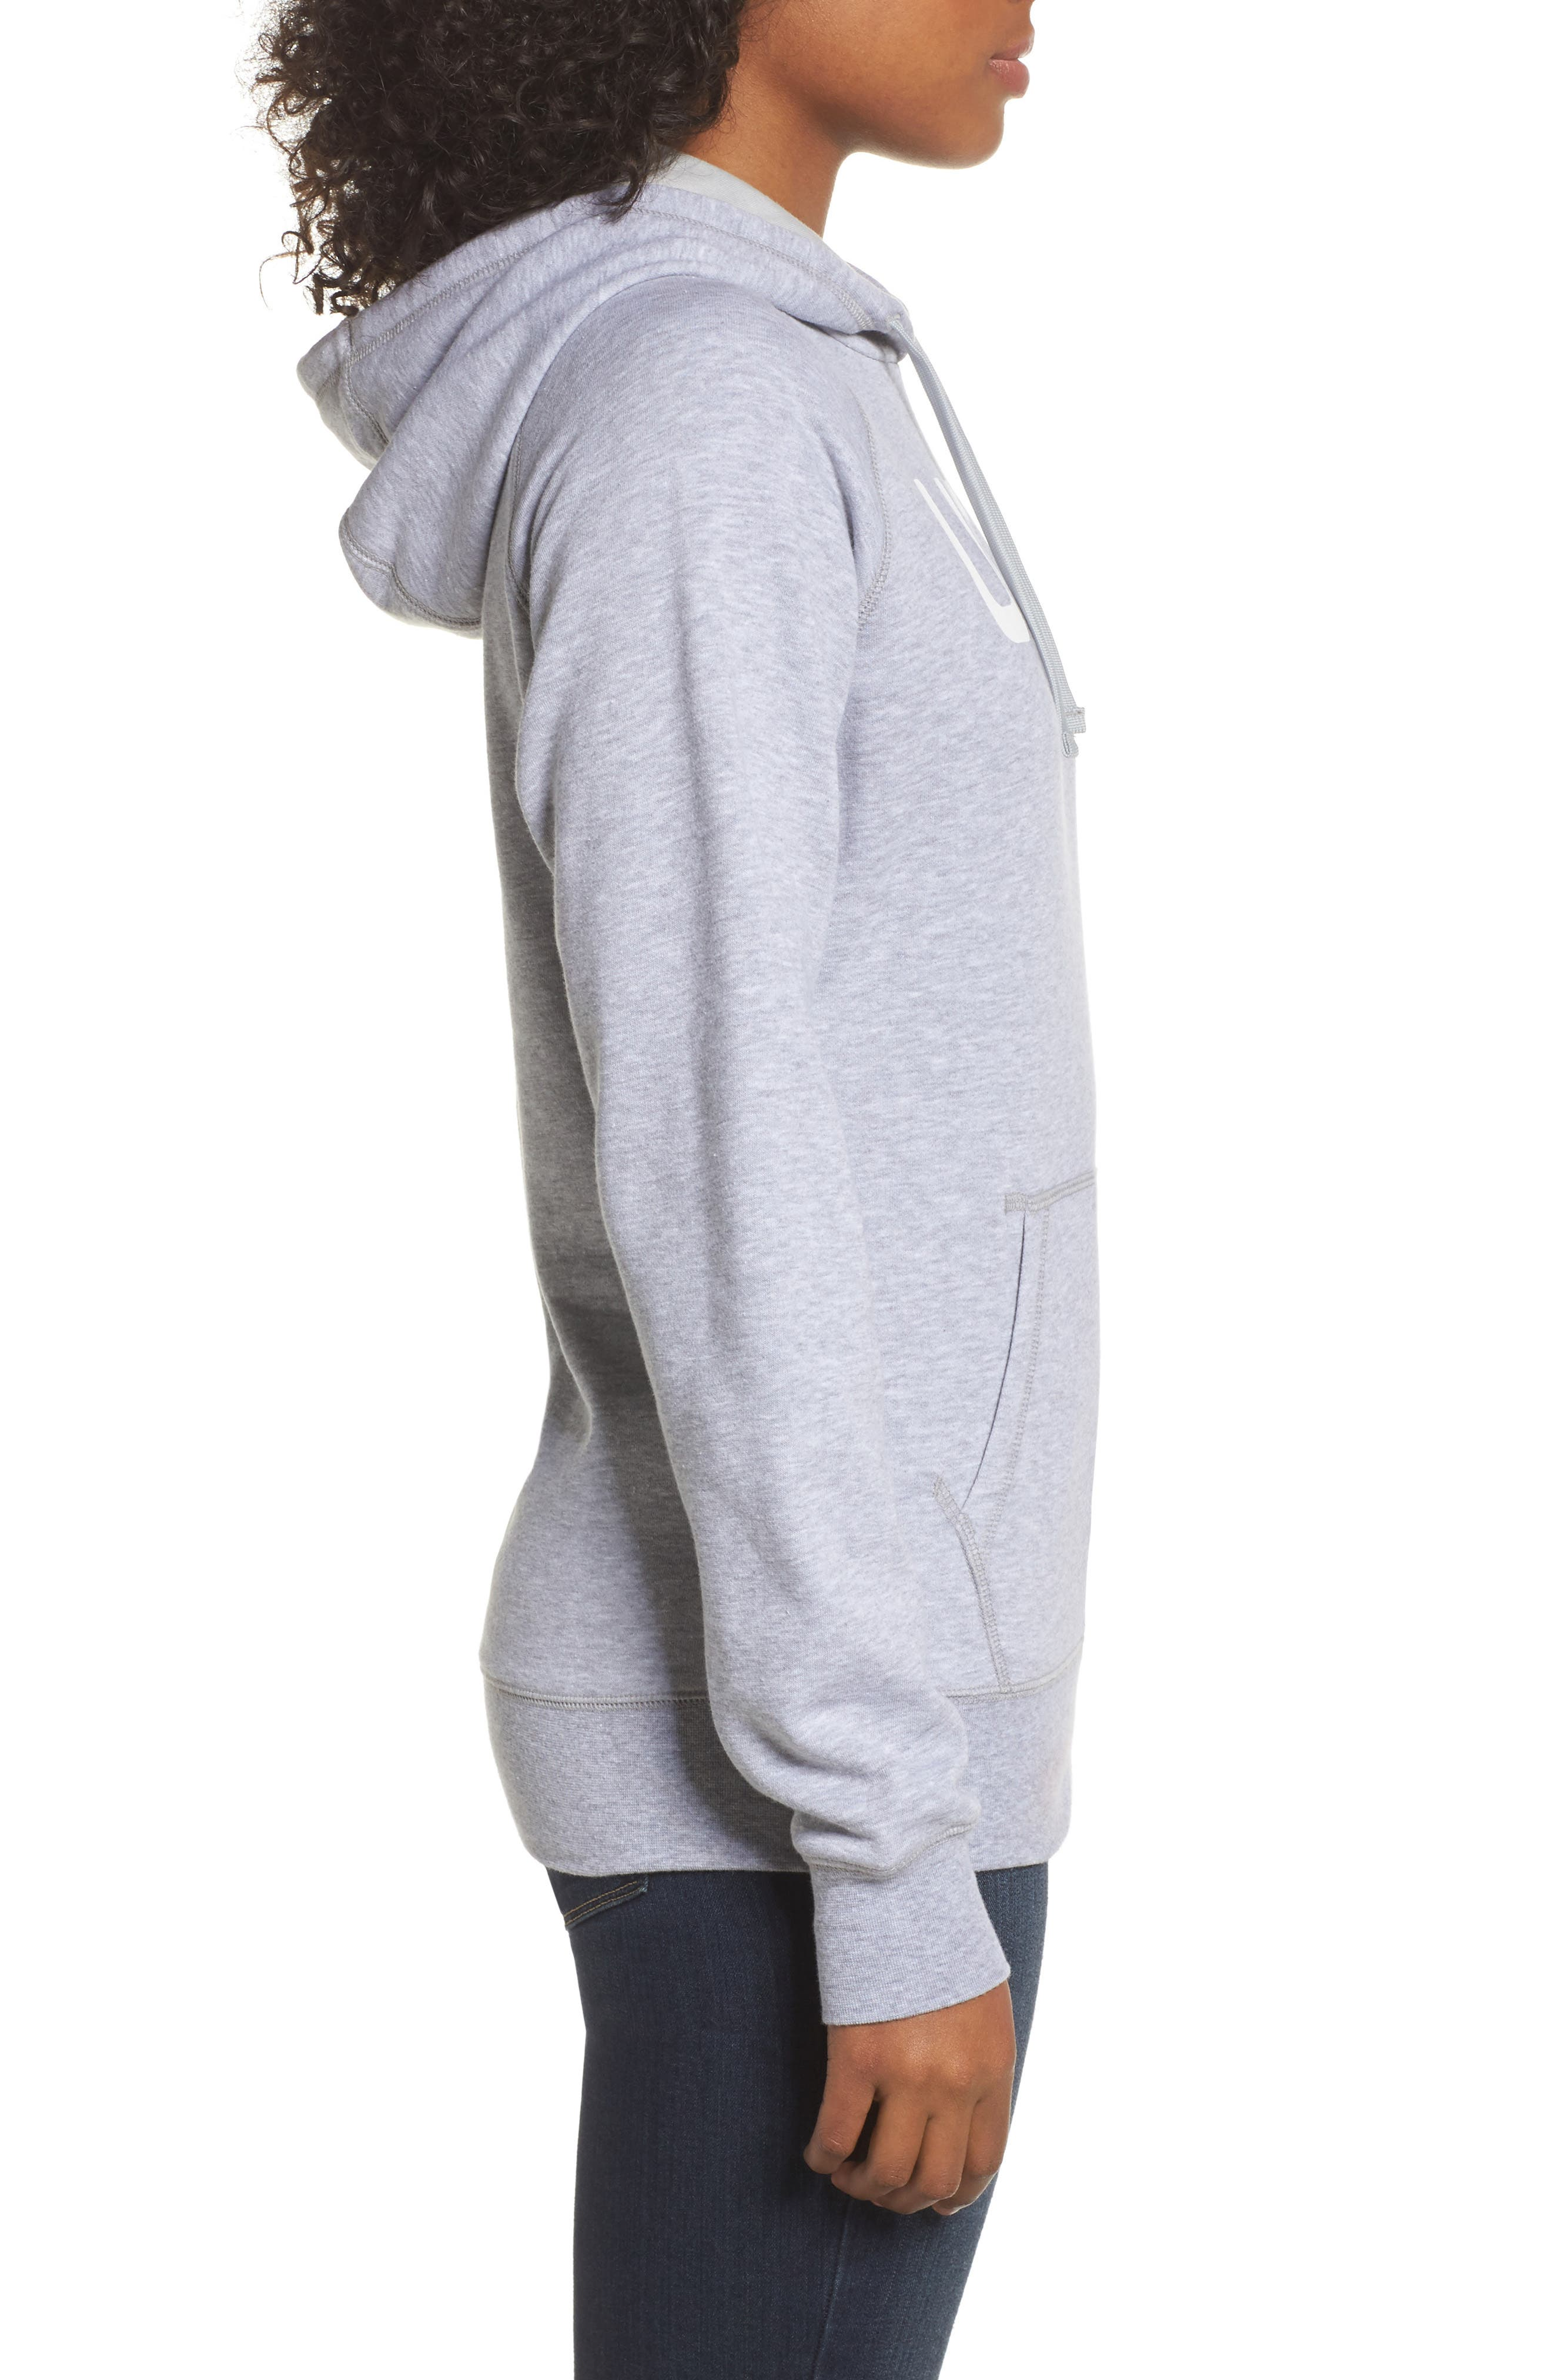 International Collection USA Pullover Hoodie,                             Alternate thumbnail 3, color,                             Tnf Light Grey Heather